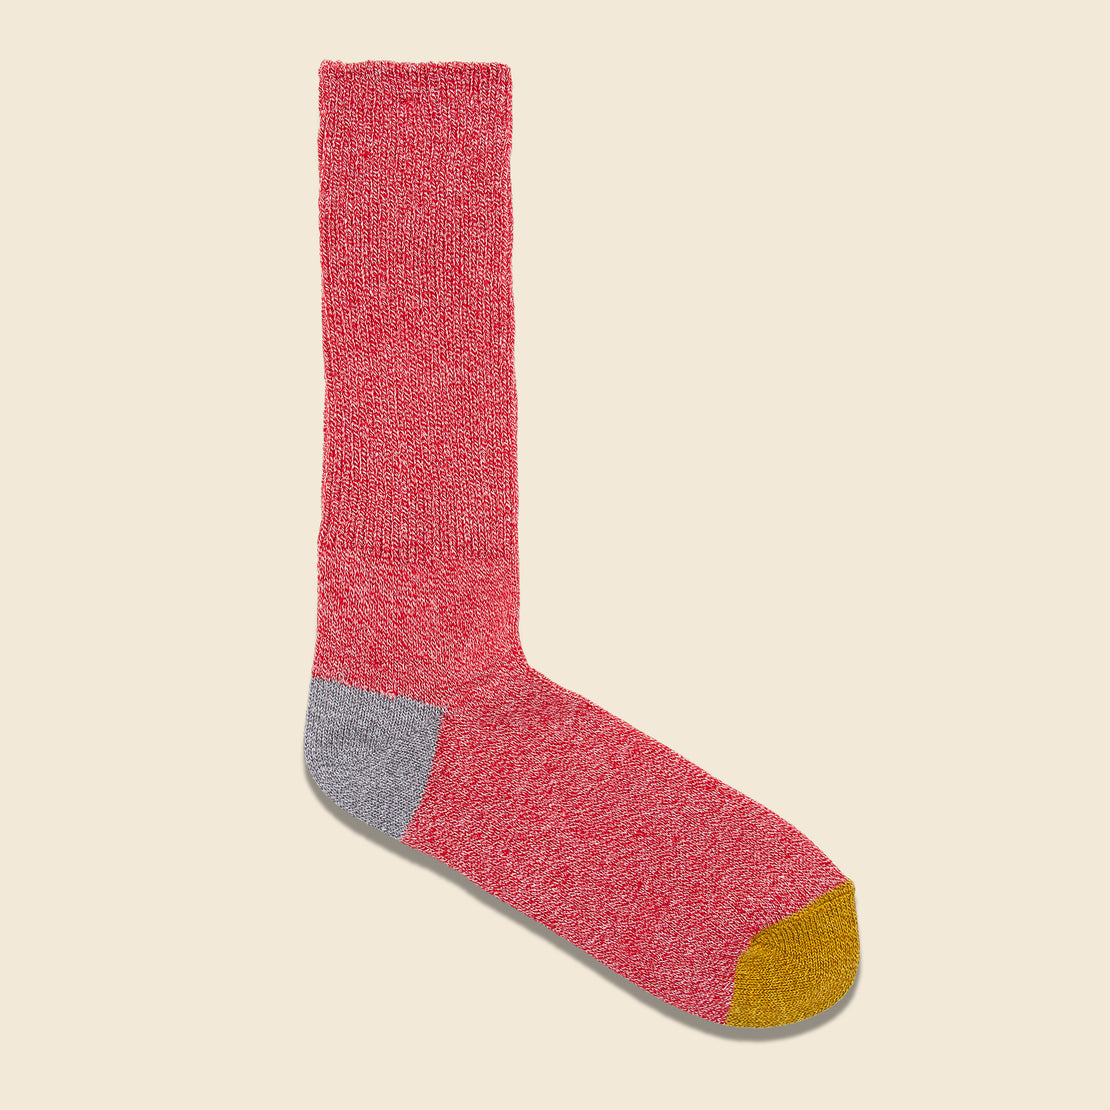 Anonymous Ism 2-Point Heel/Toe Crew Sock - Pink/Grey/Gold